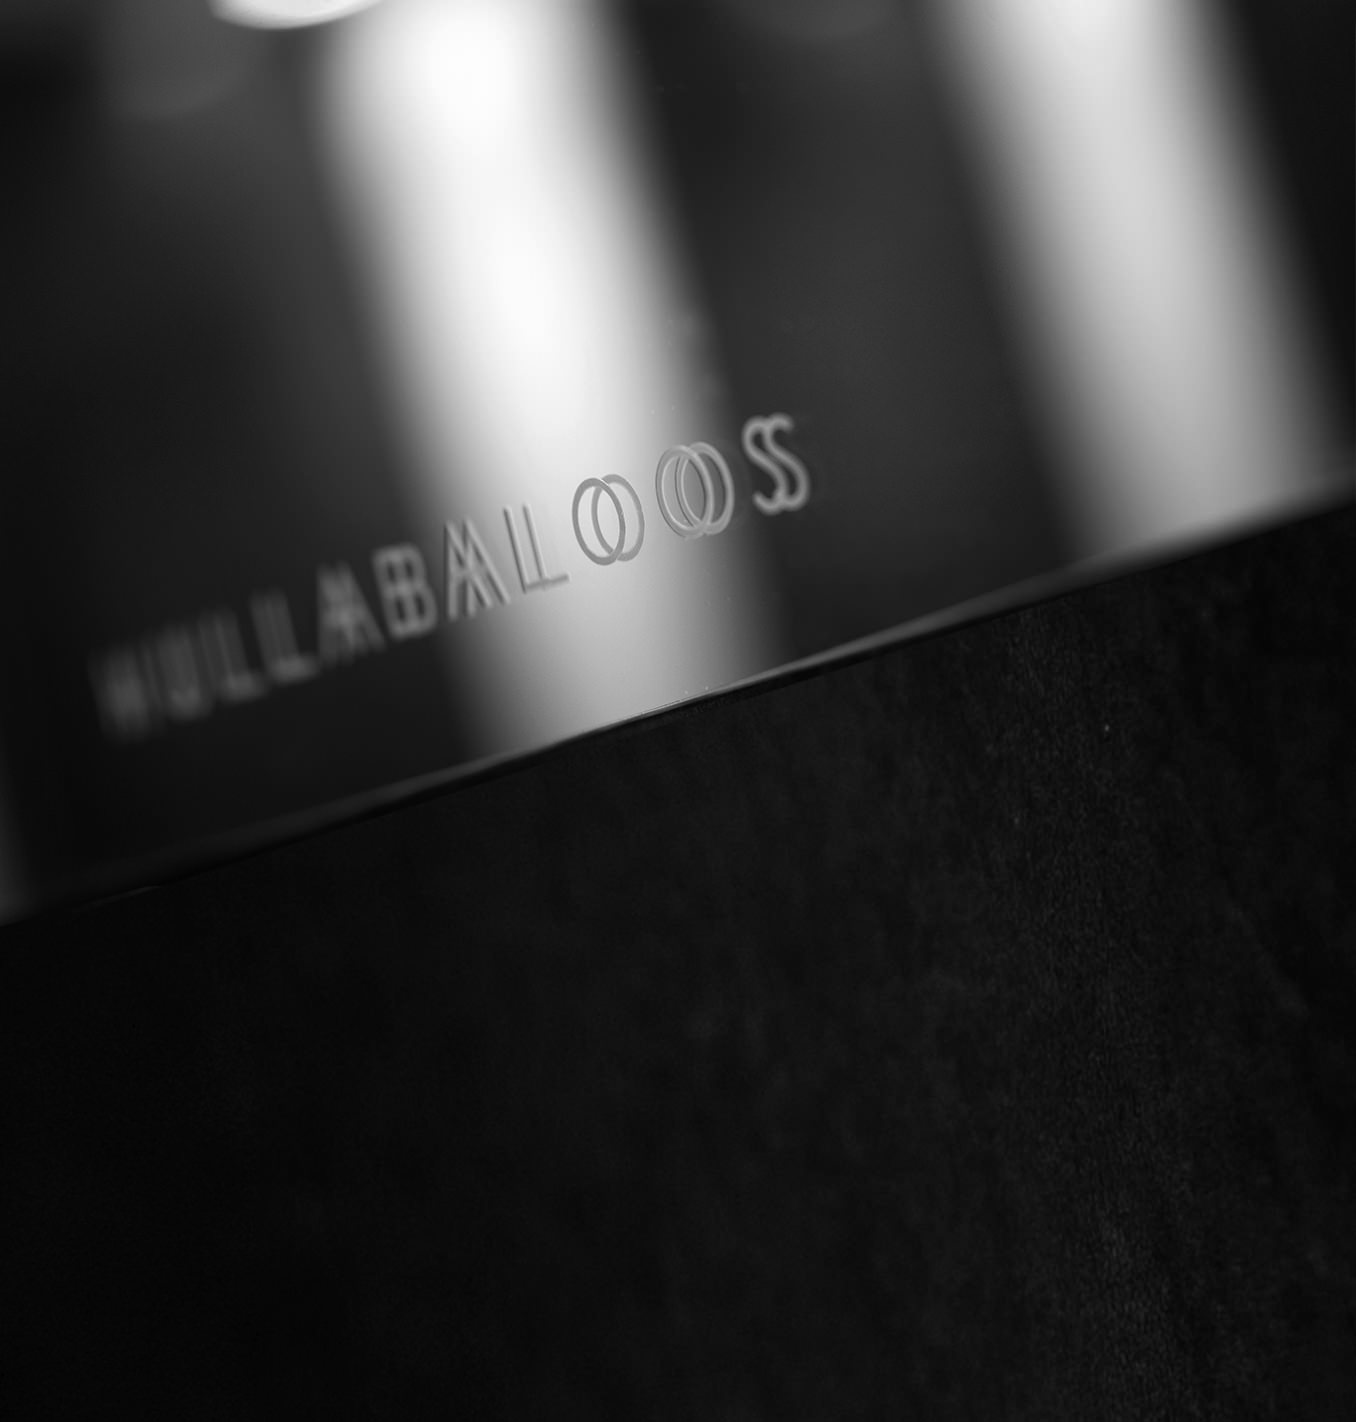 Photo of the Hullabaloos name